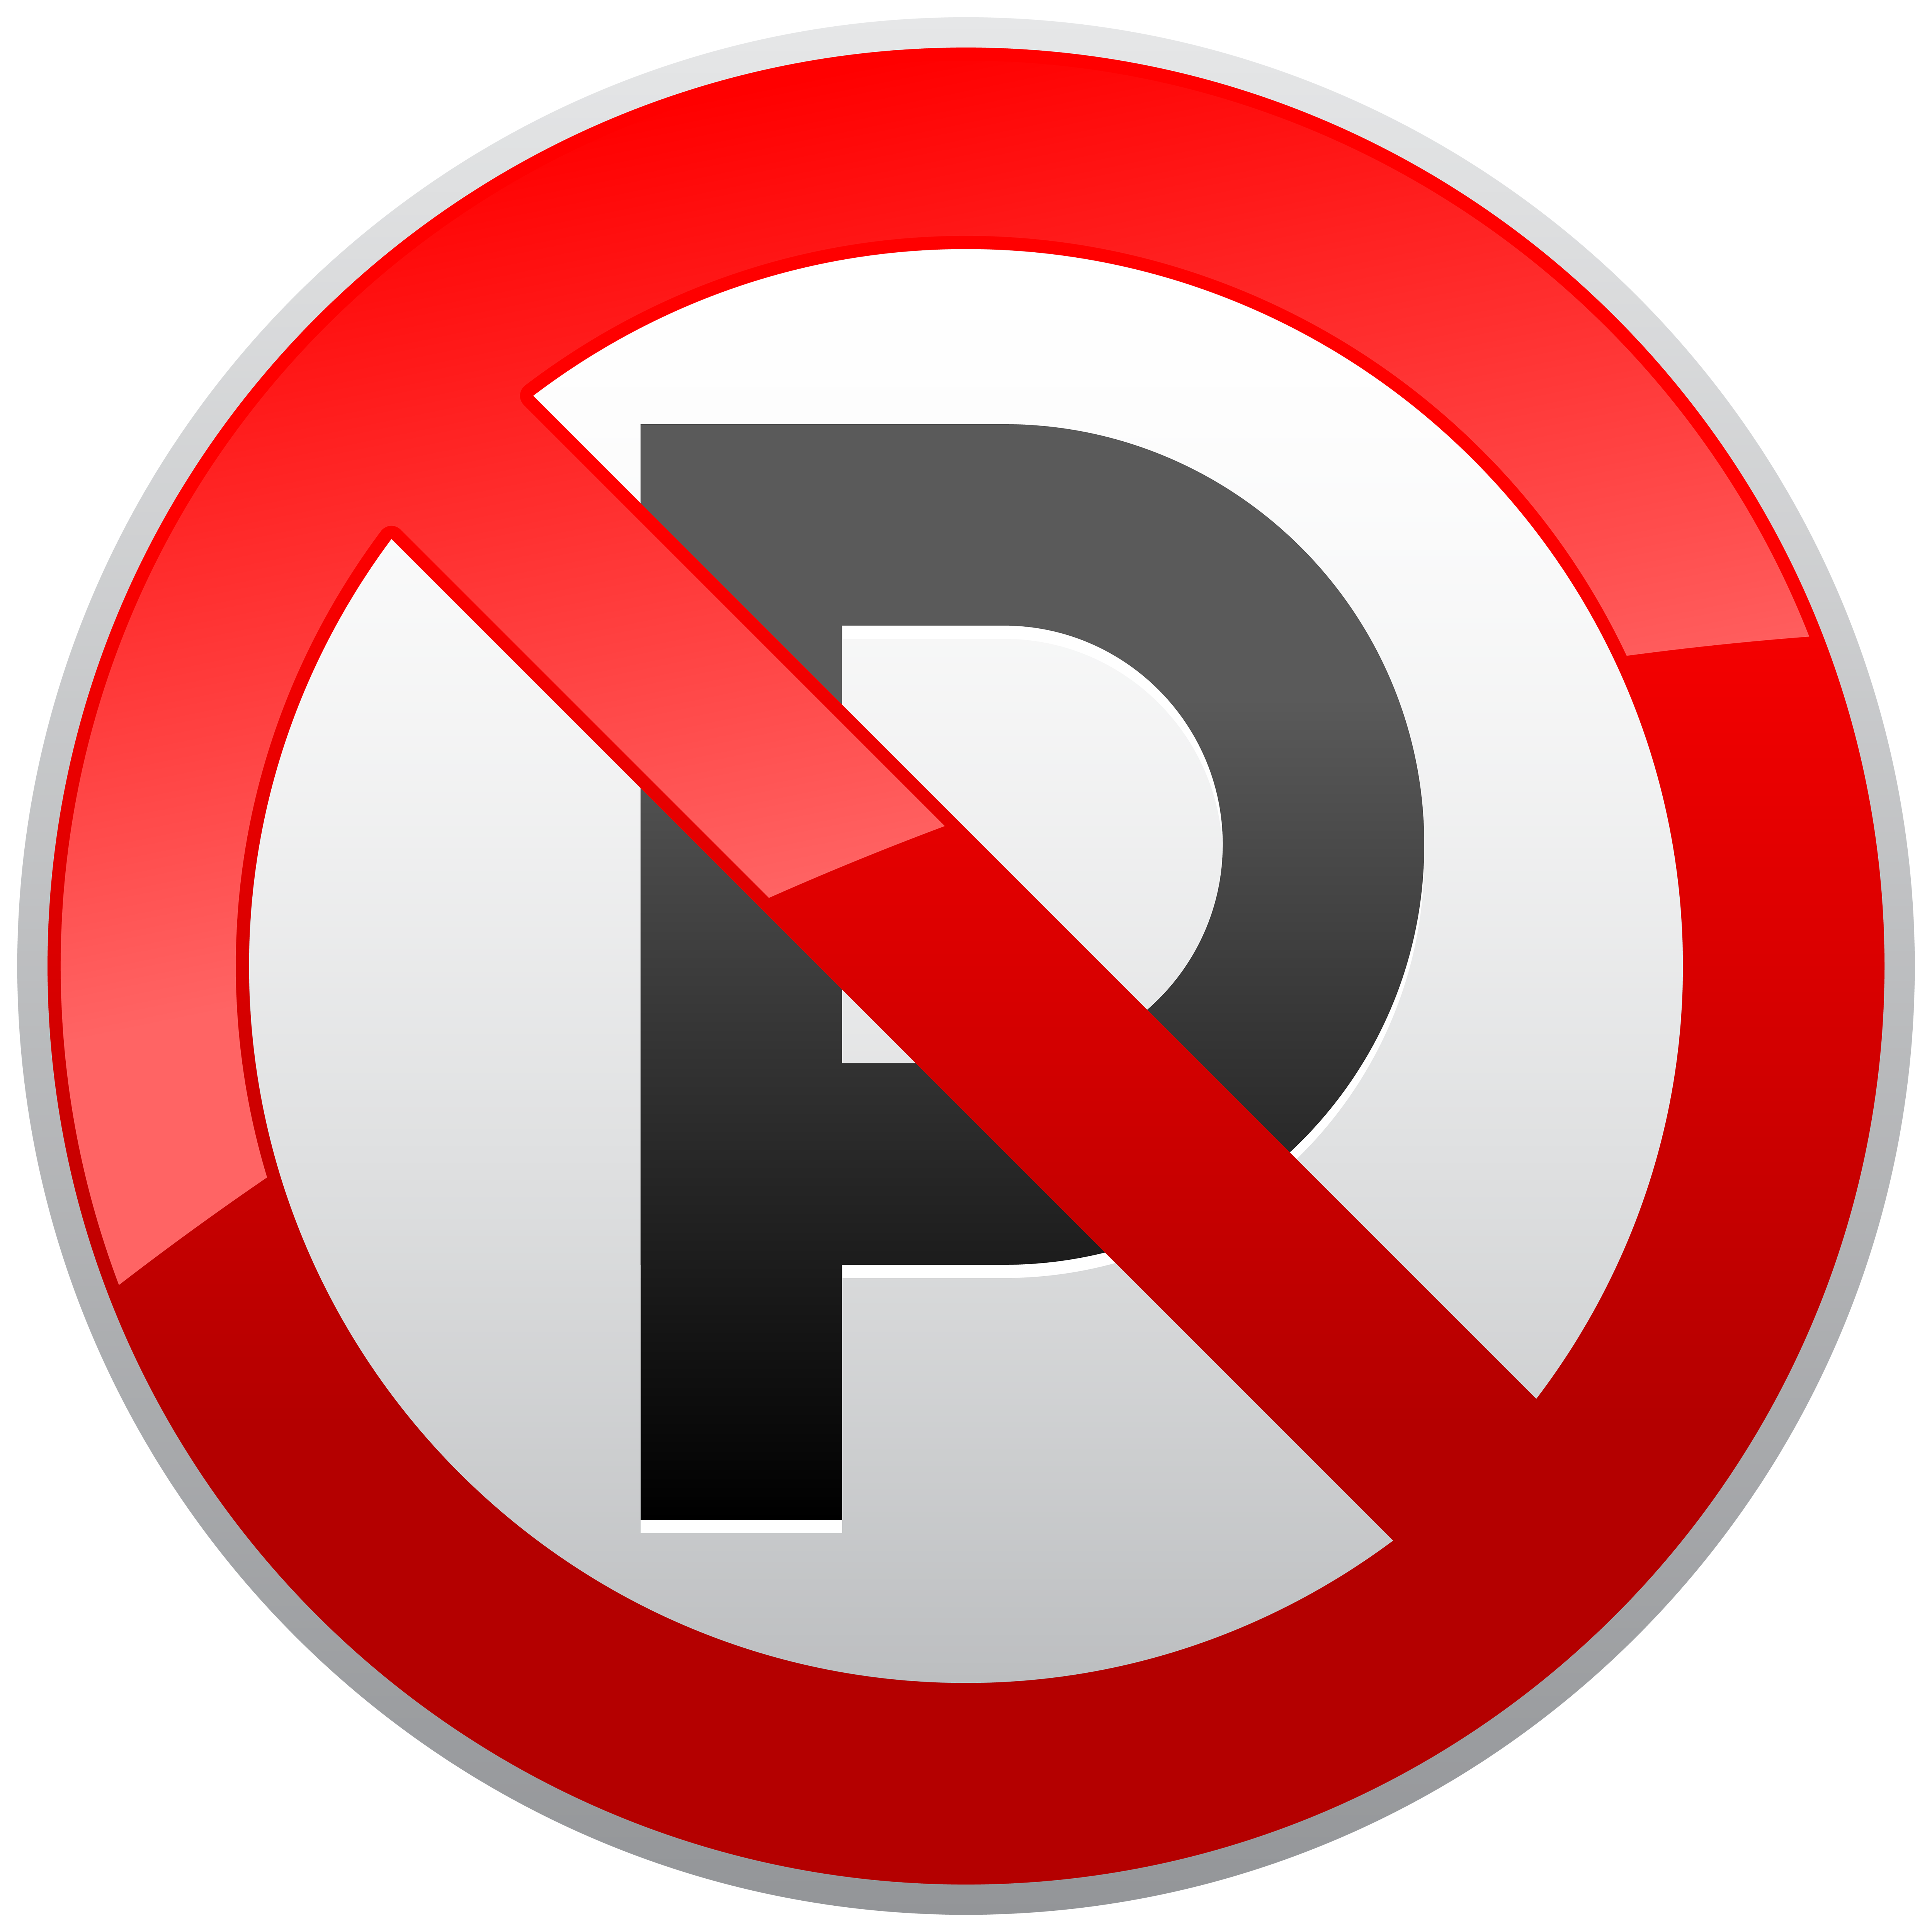 No Parking Prohibition Sign PNG Clipart.